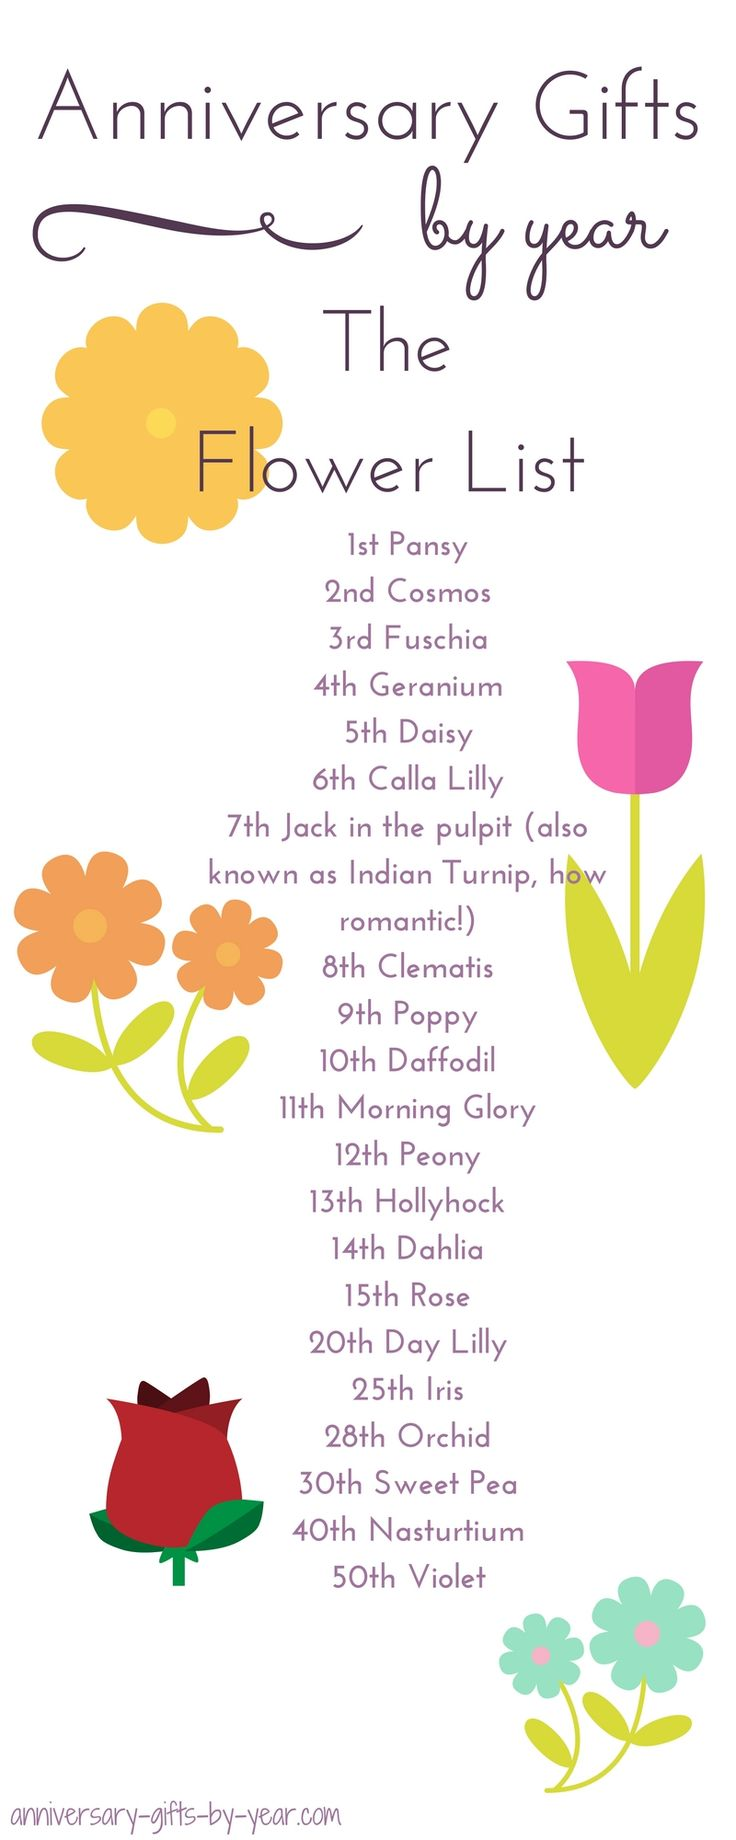 Anniversary gifts by year in flowers - find out the meaning behind the flowers